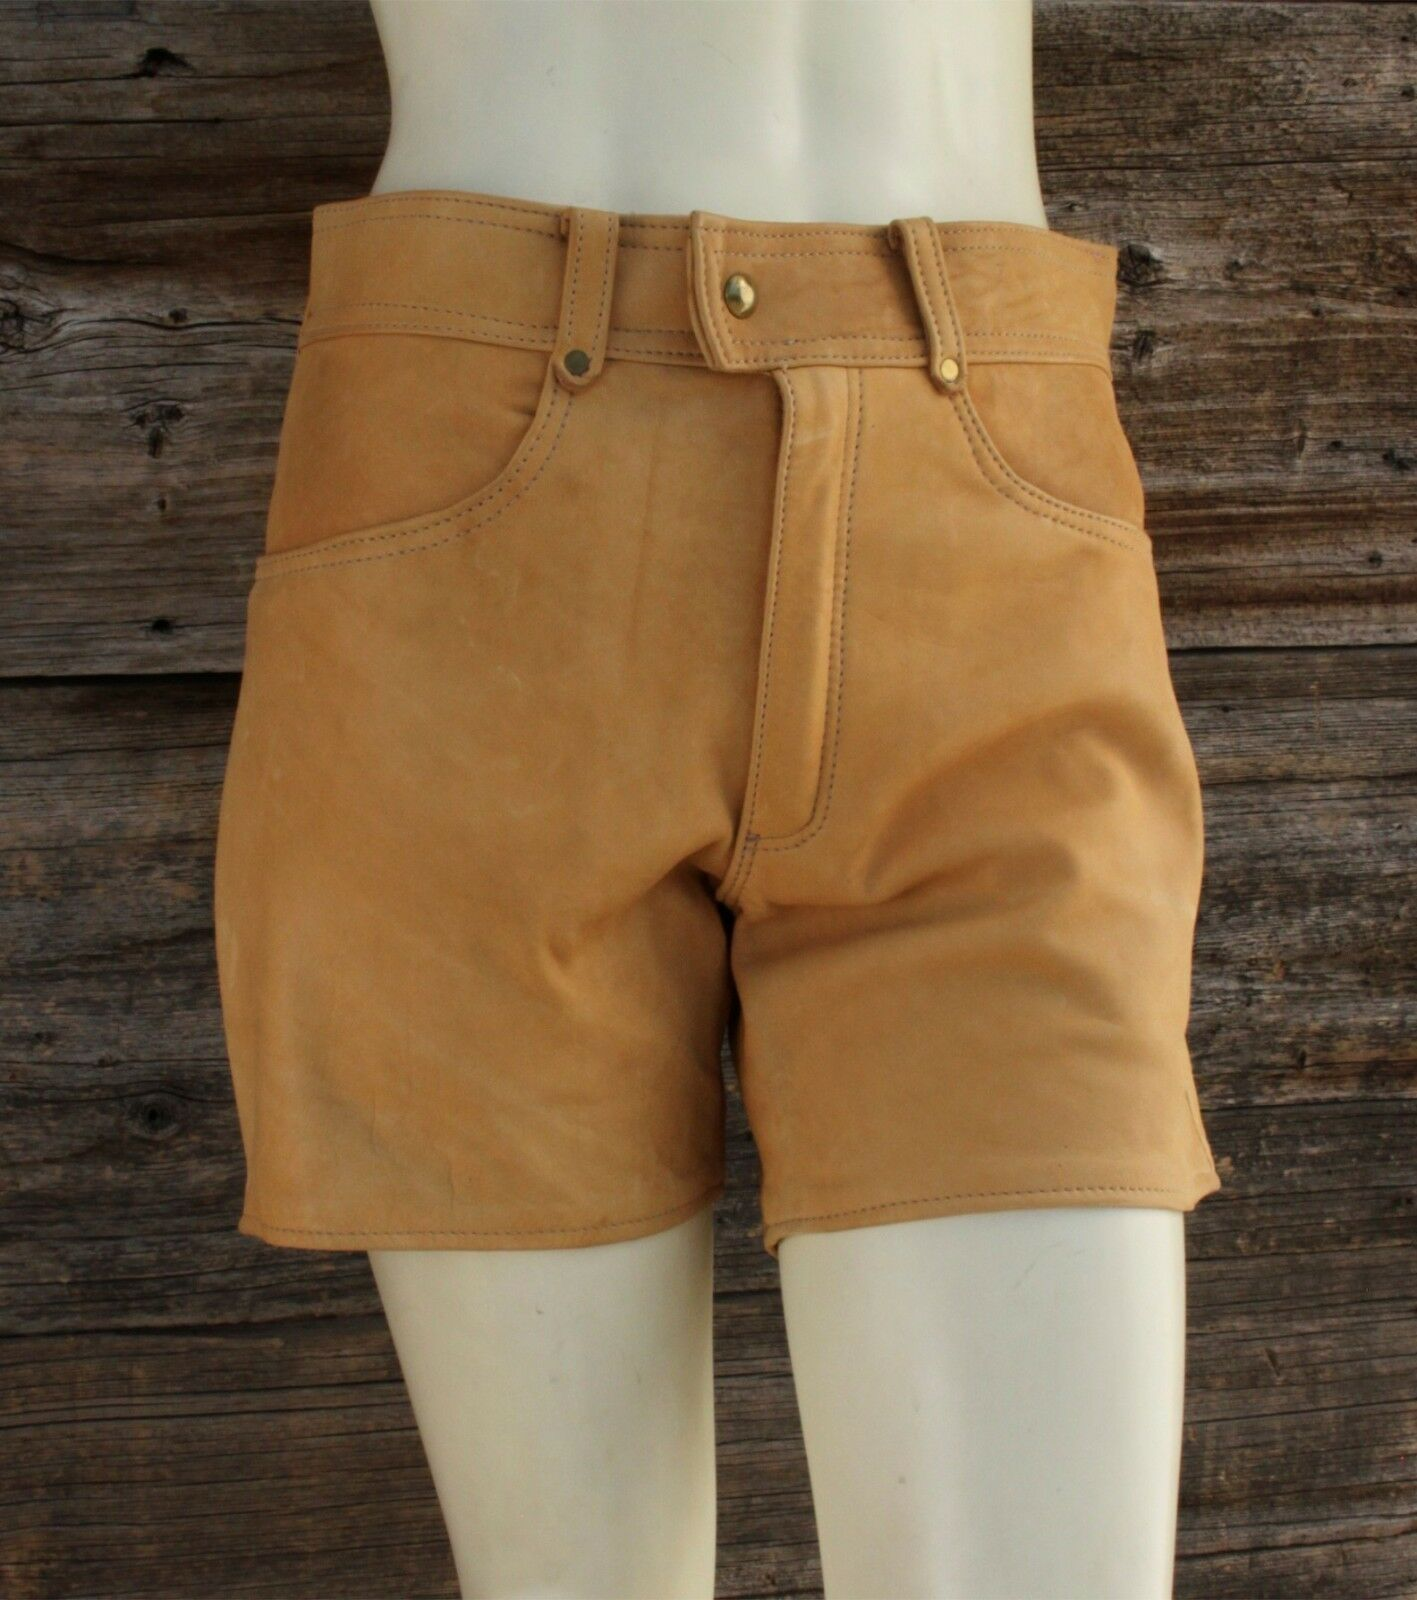 Real Hand Made Deer Skin Leather Shorts by Skin Company Productions  30x5